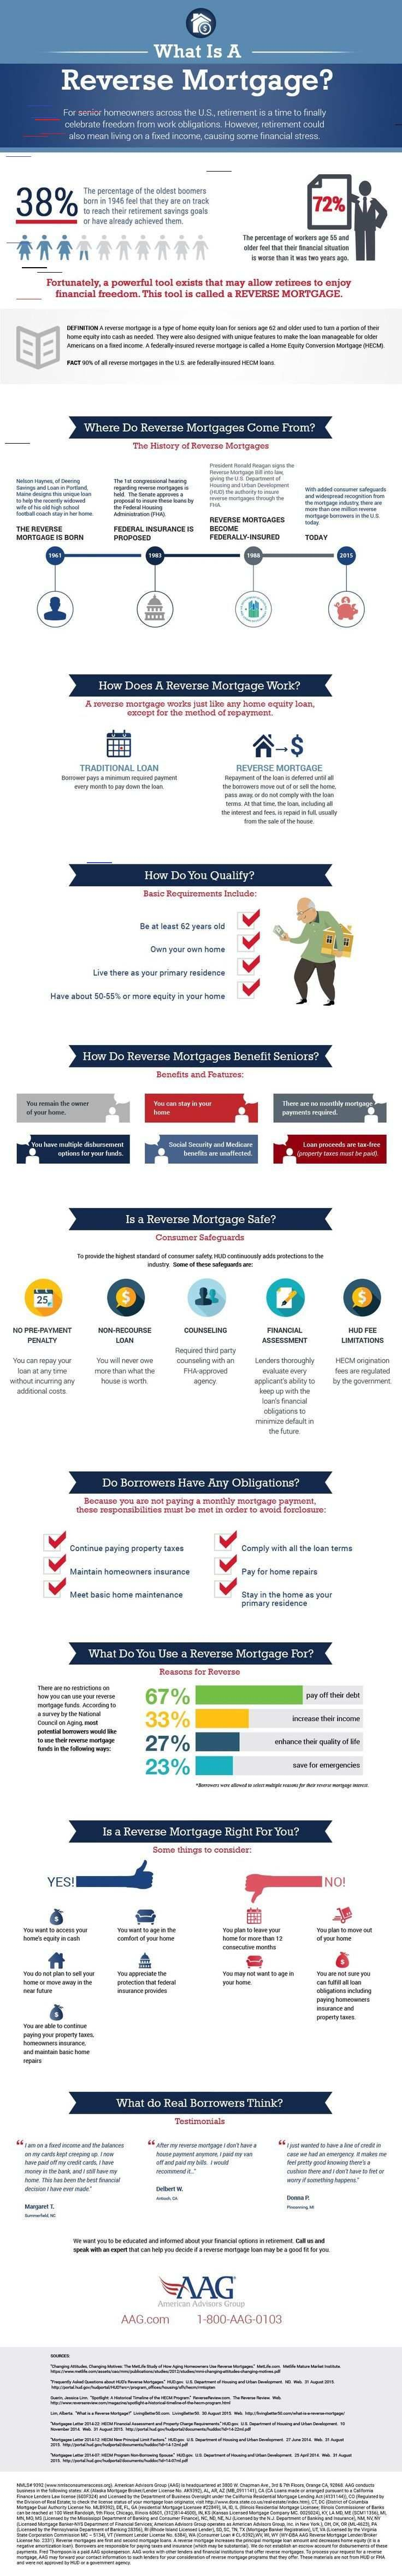 Pin By Karlenekatalinlindieyh On Mortgage In 2020 Mortgage Infographic Refinance Mortgage Reverse Mortgage